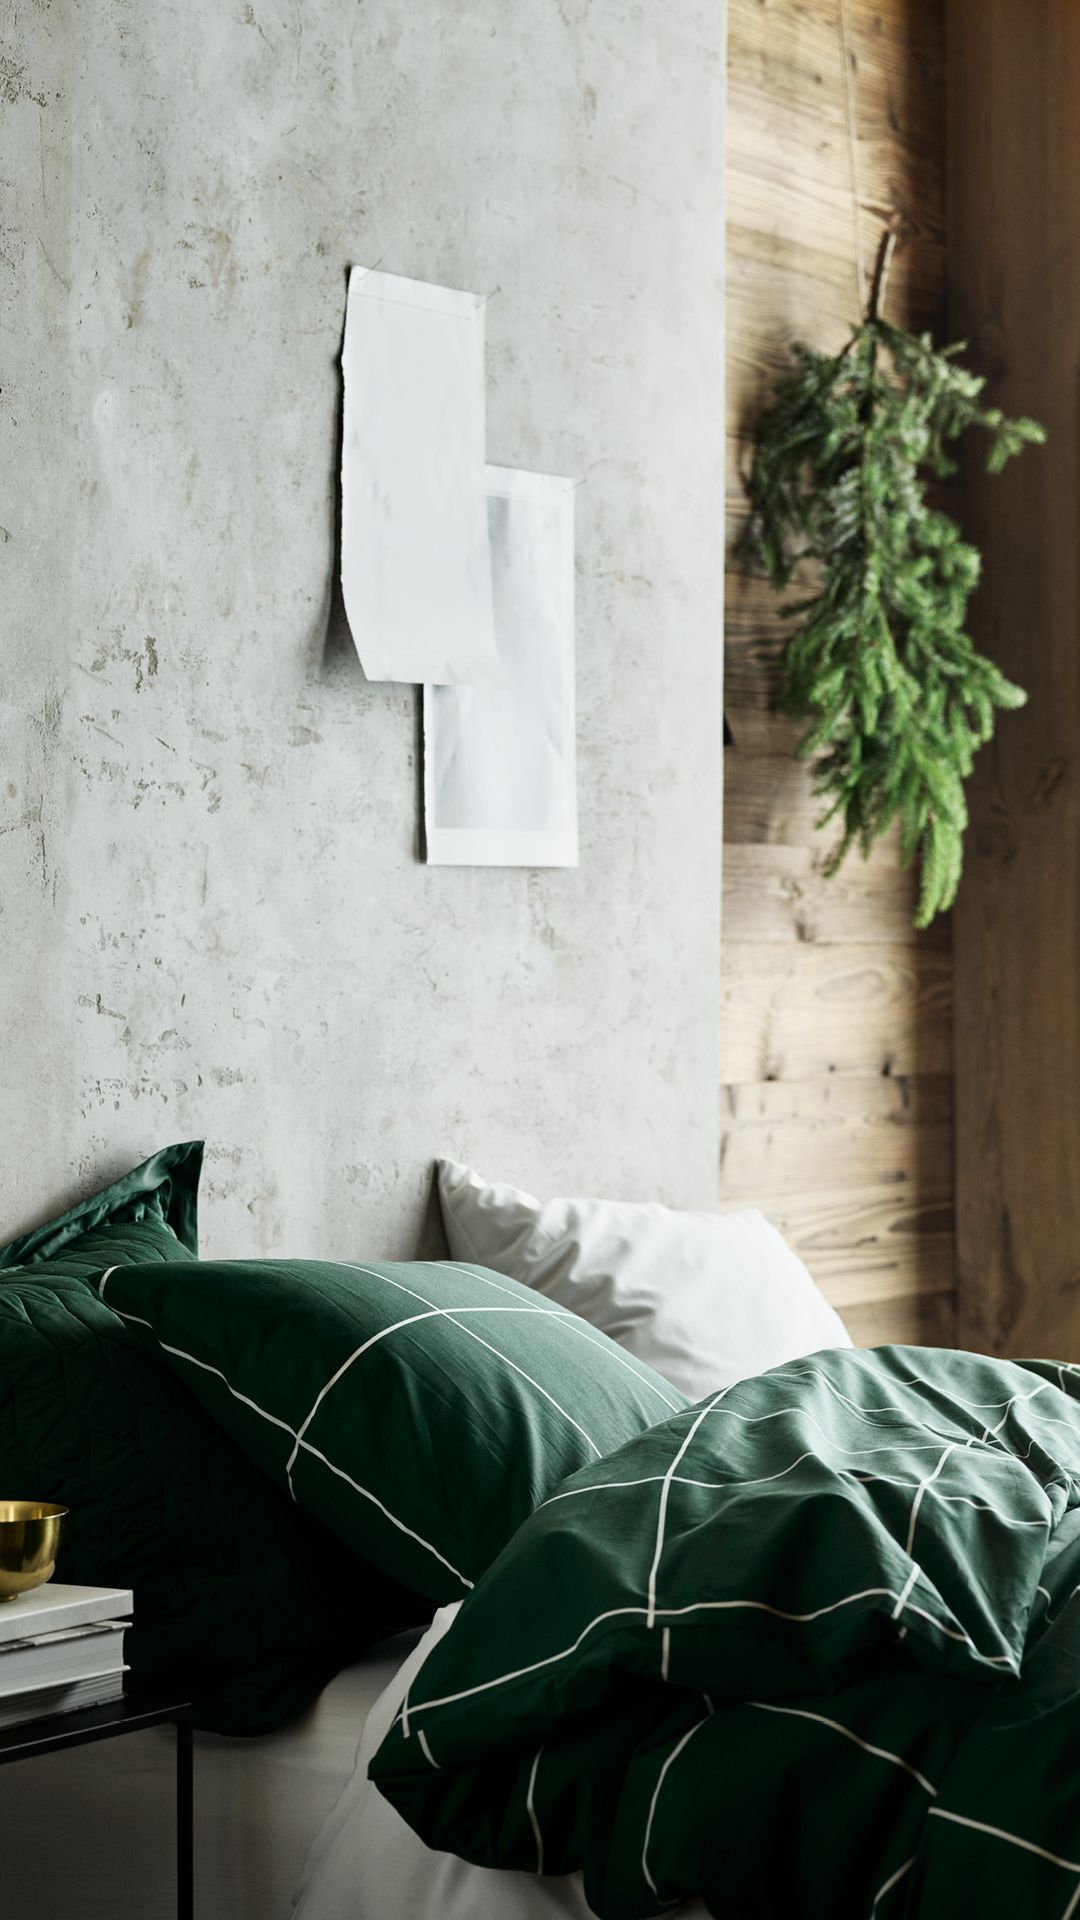 h m home make the holiday season less stressful with green bedding rh pinterest com